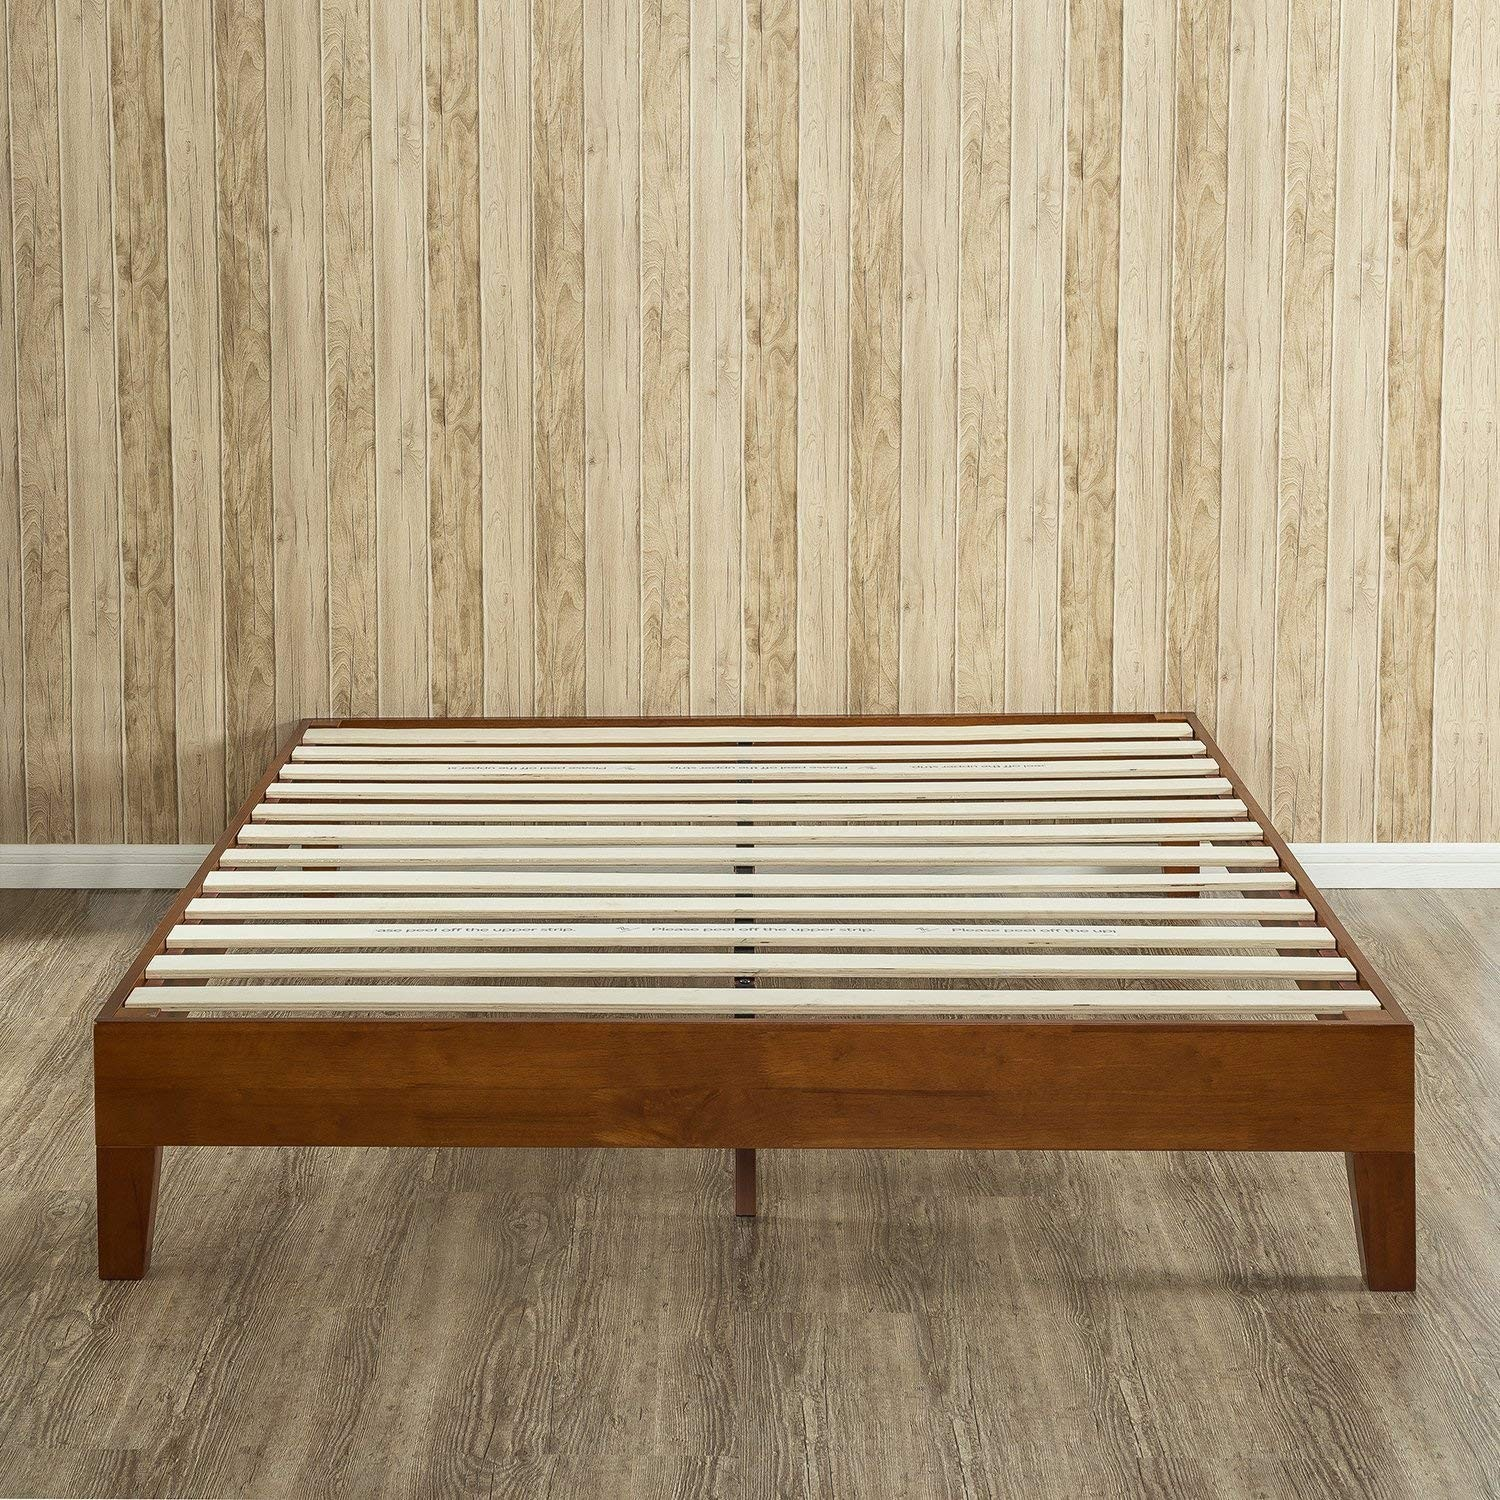 Best Finish For Outdoor Wood Furniture